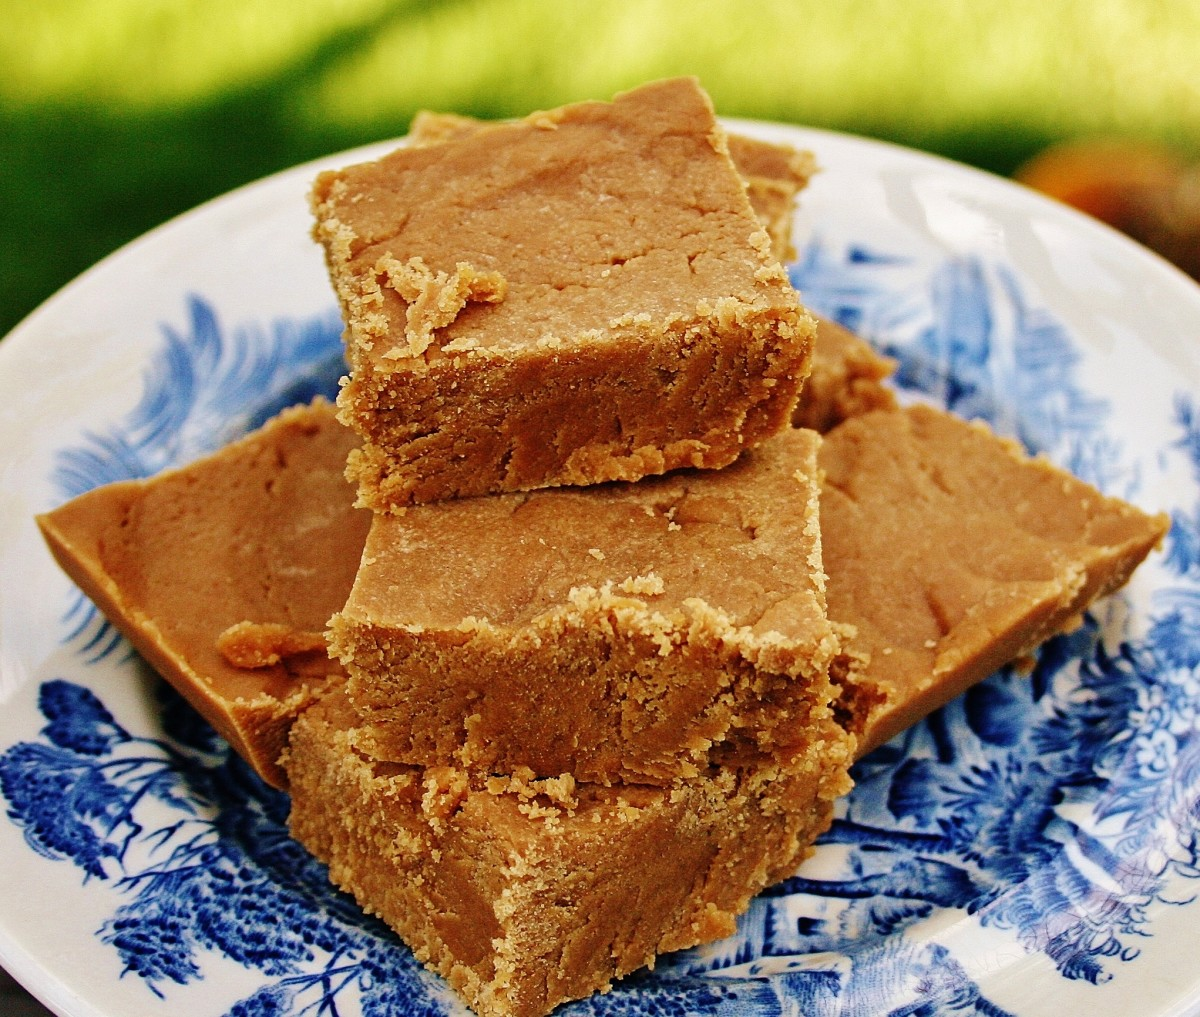 This fudge is just right--creamy, peanut buttery and not too, too sweet.